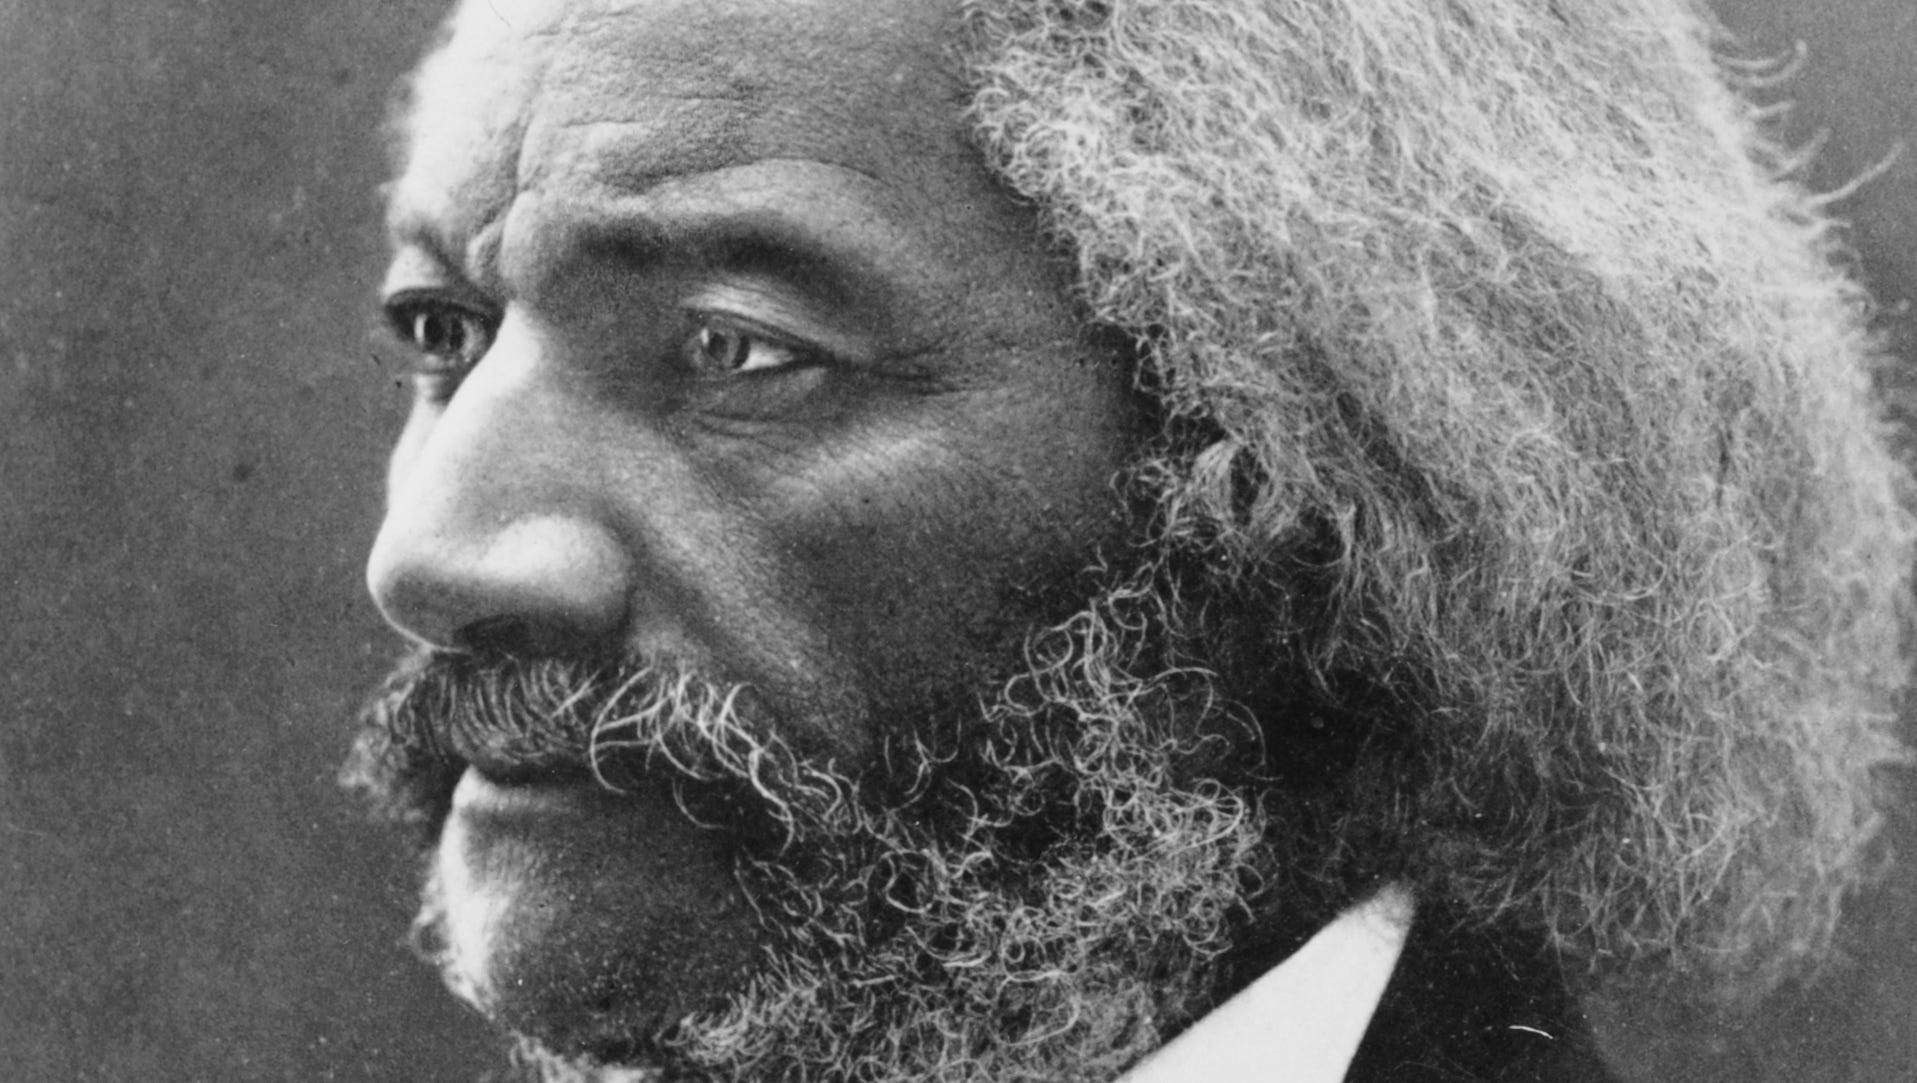 Frederick Douglass' July 4 speeches trace changes in U.S. history